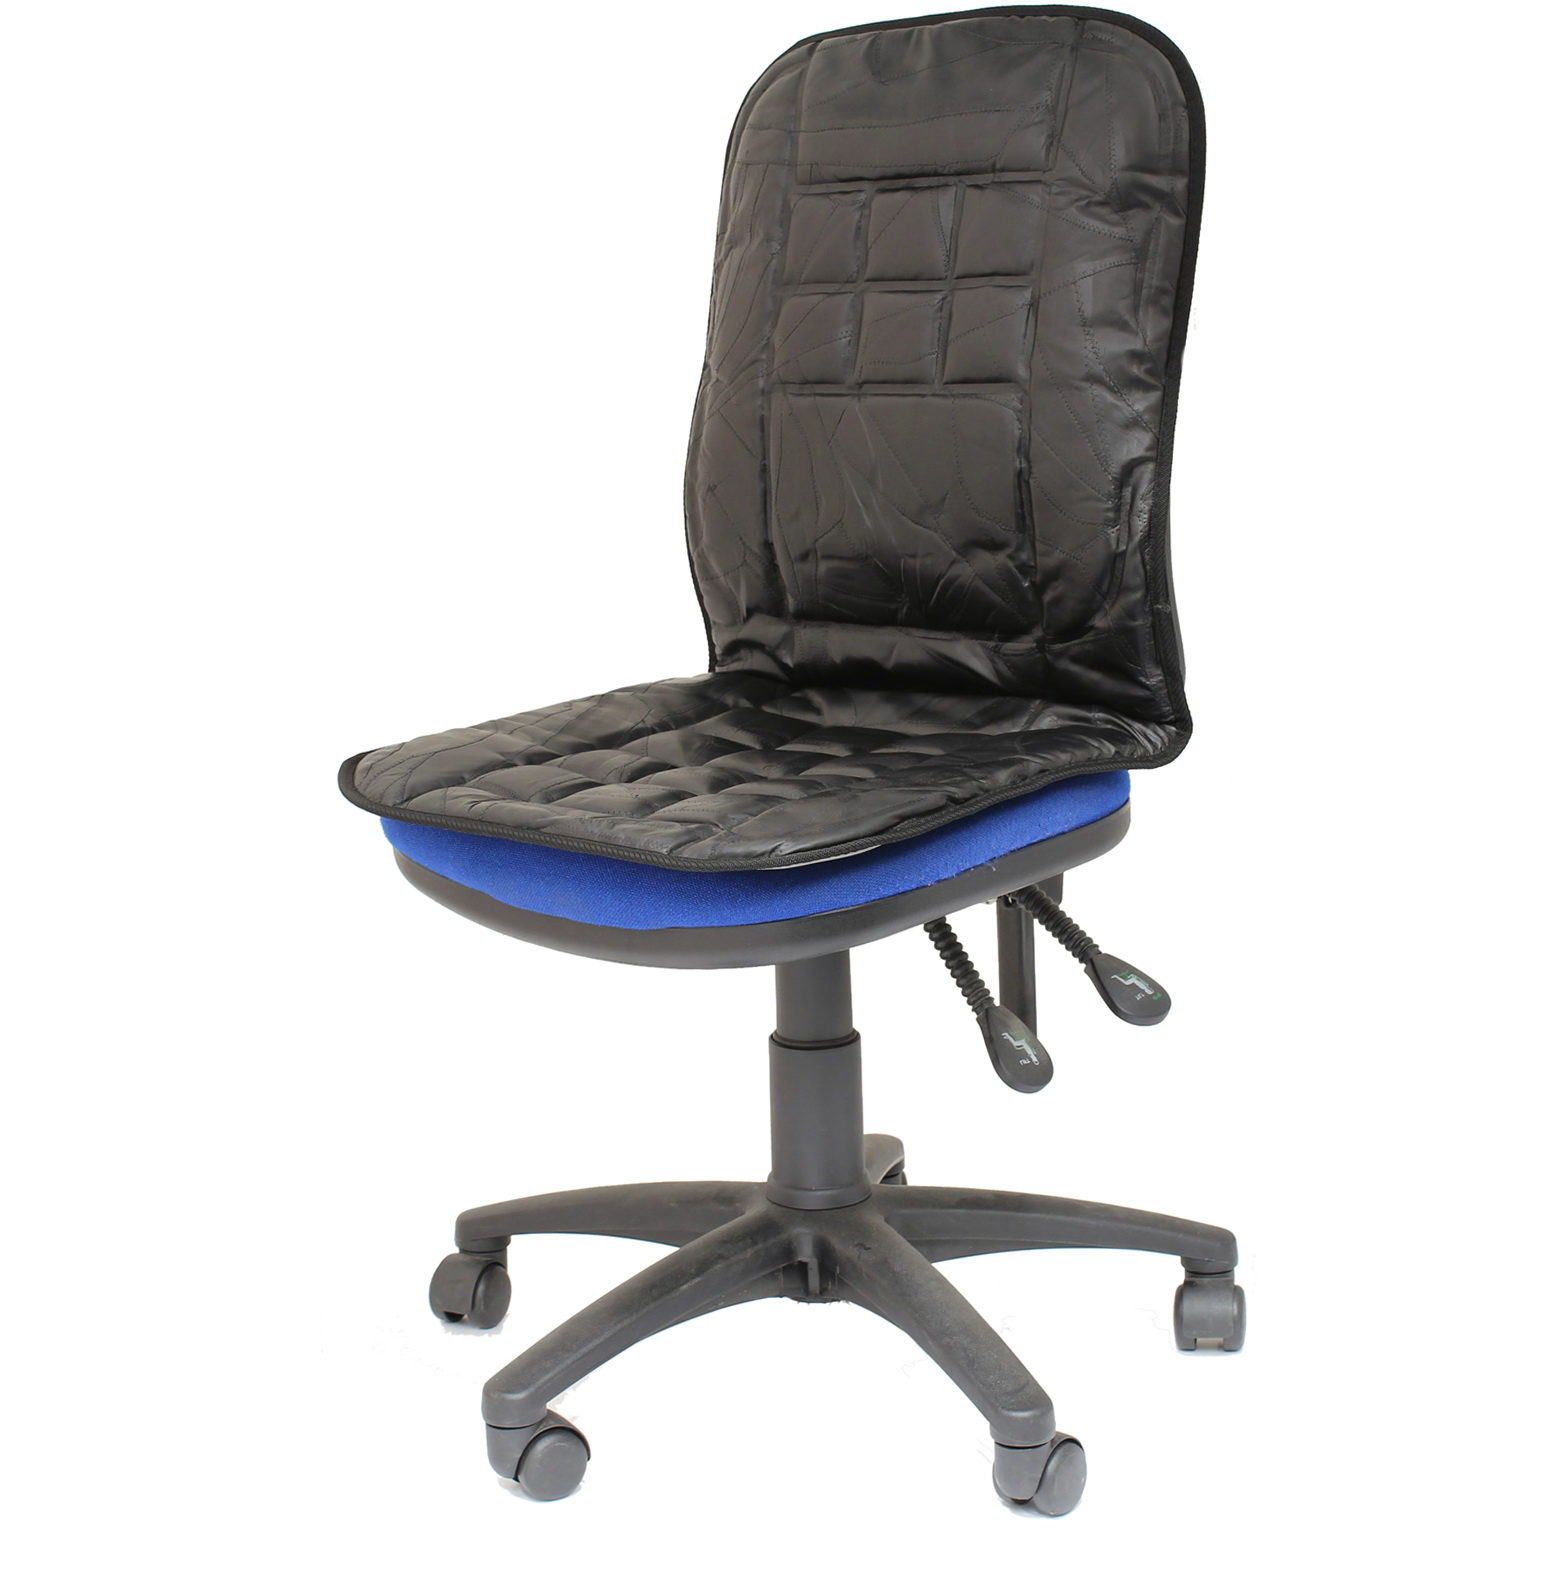 ergonomic chair description hammock stand round base seat back cushion office home design ideas